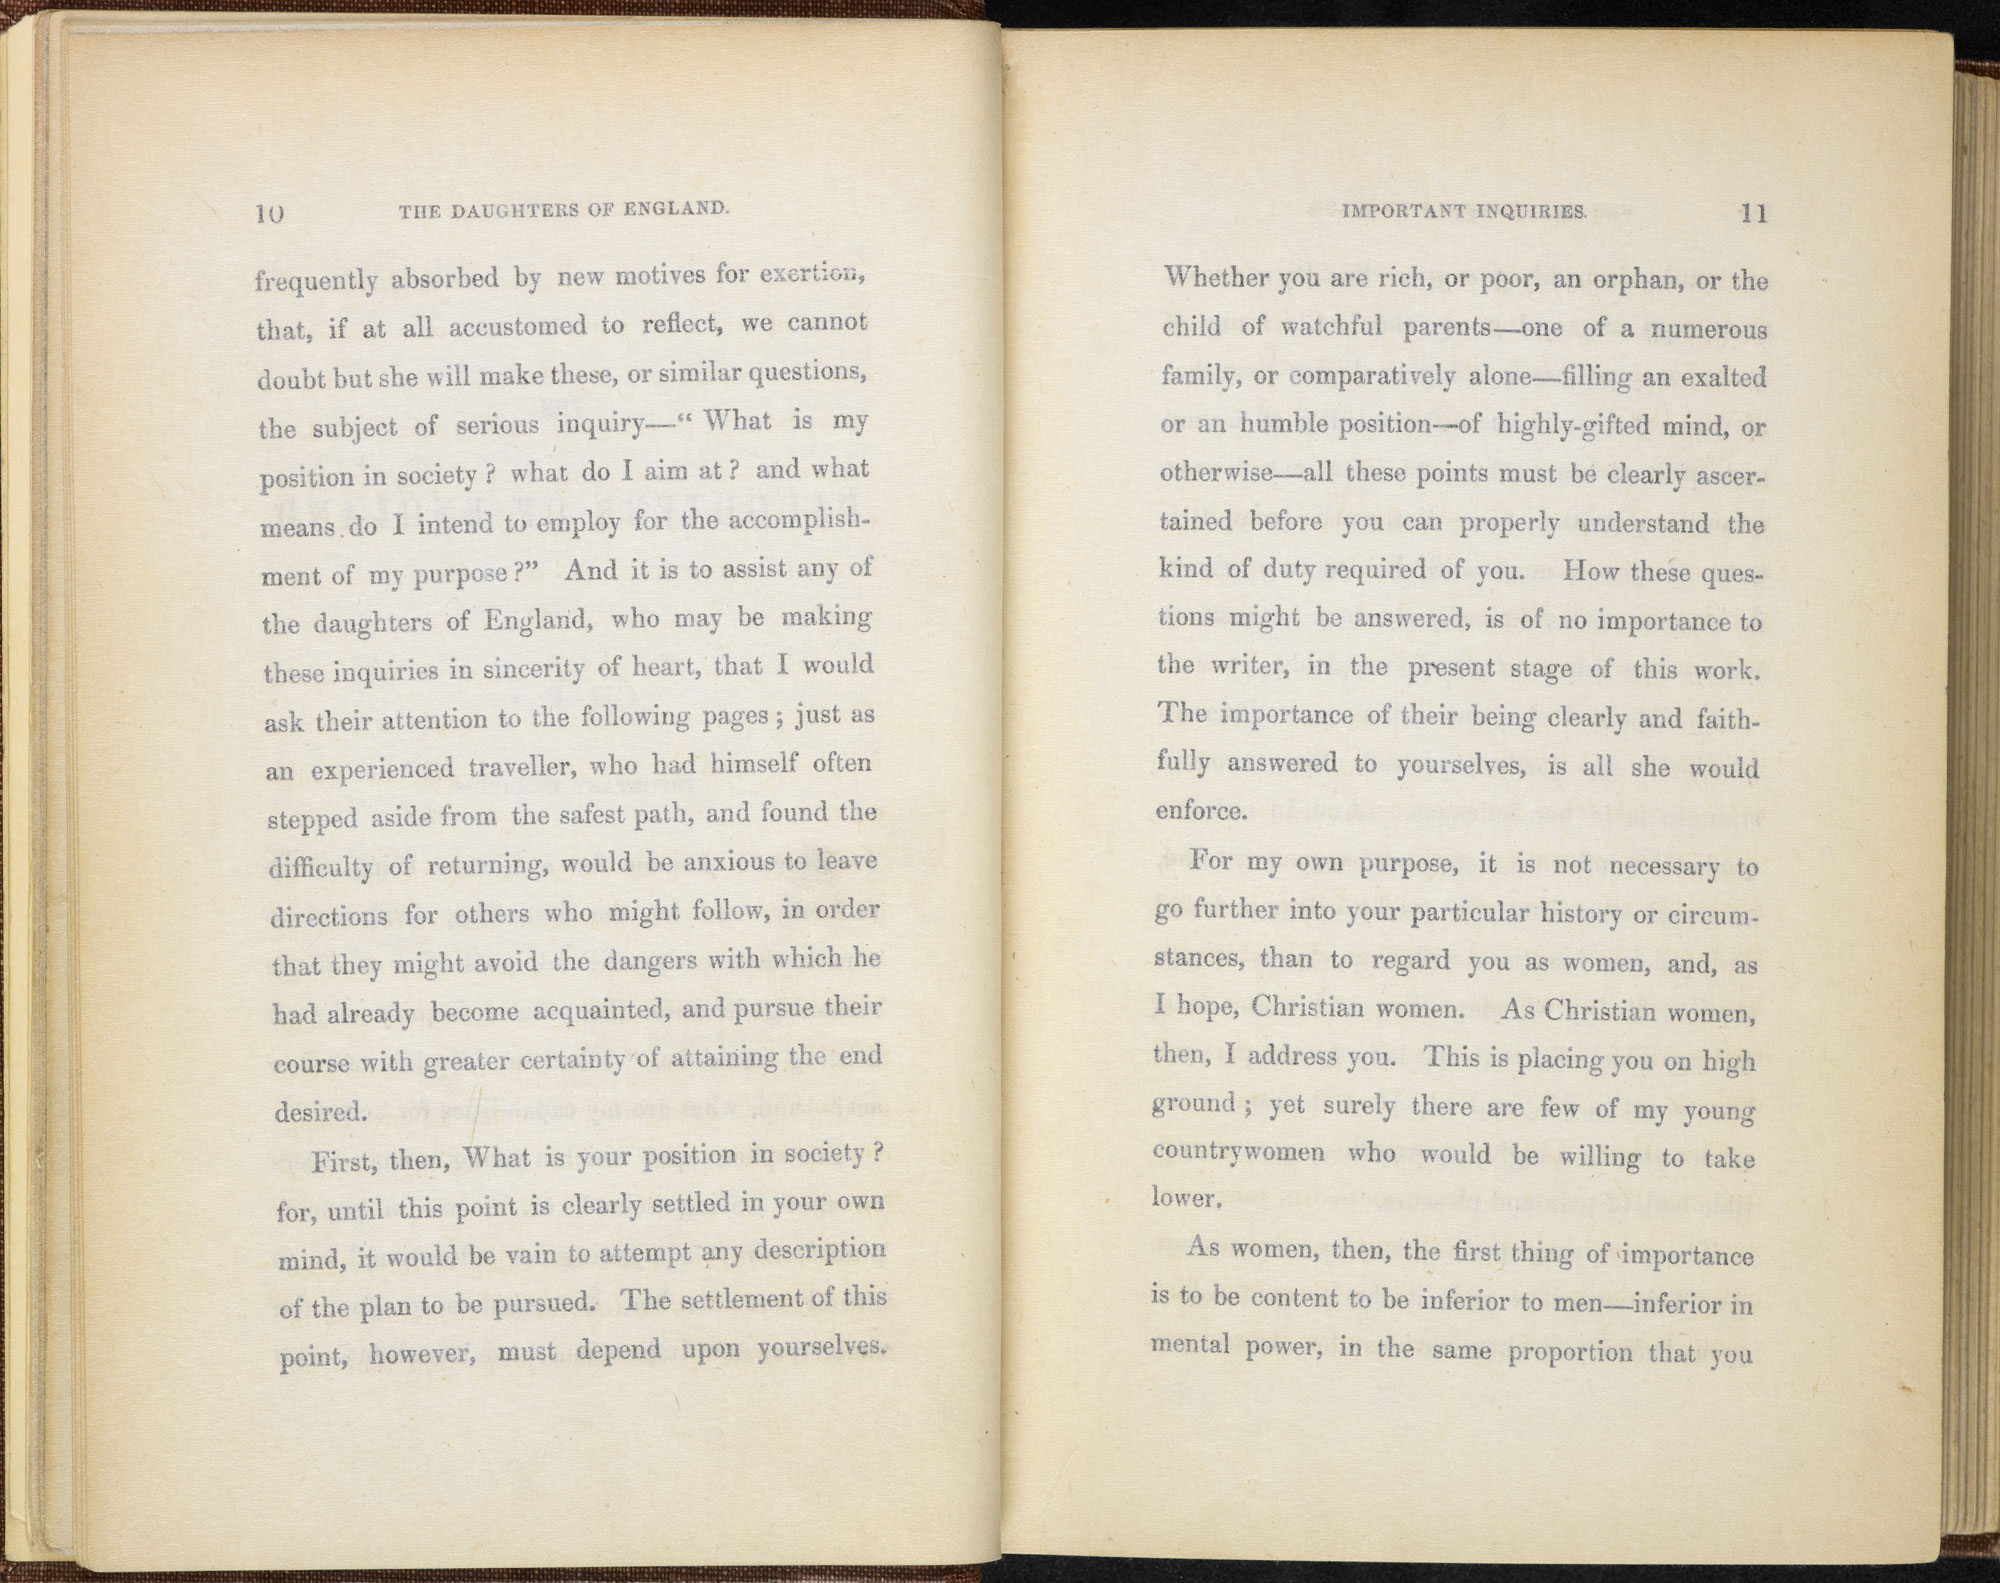 The Daughters of England by Sarah Stickney Ellis [page: 10-11]